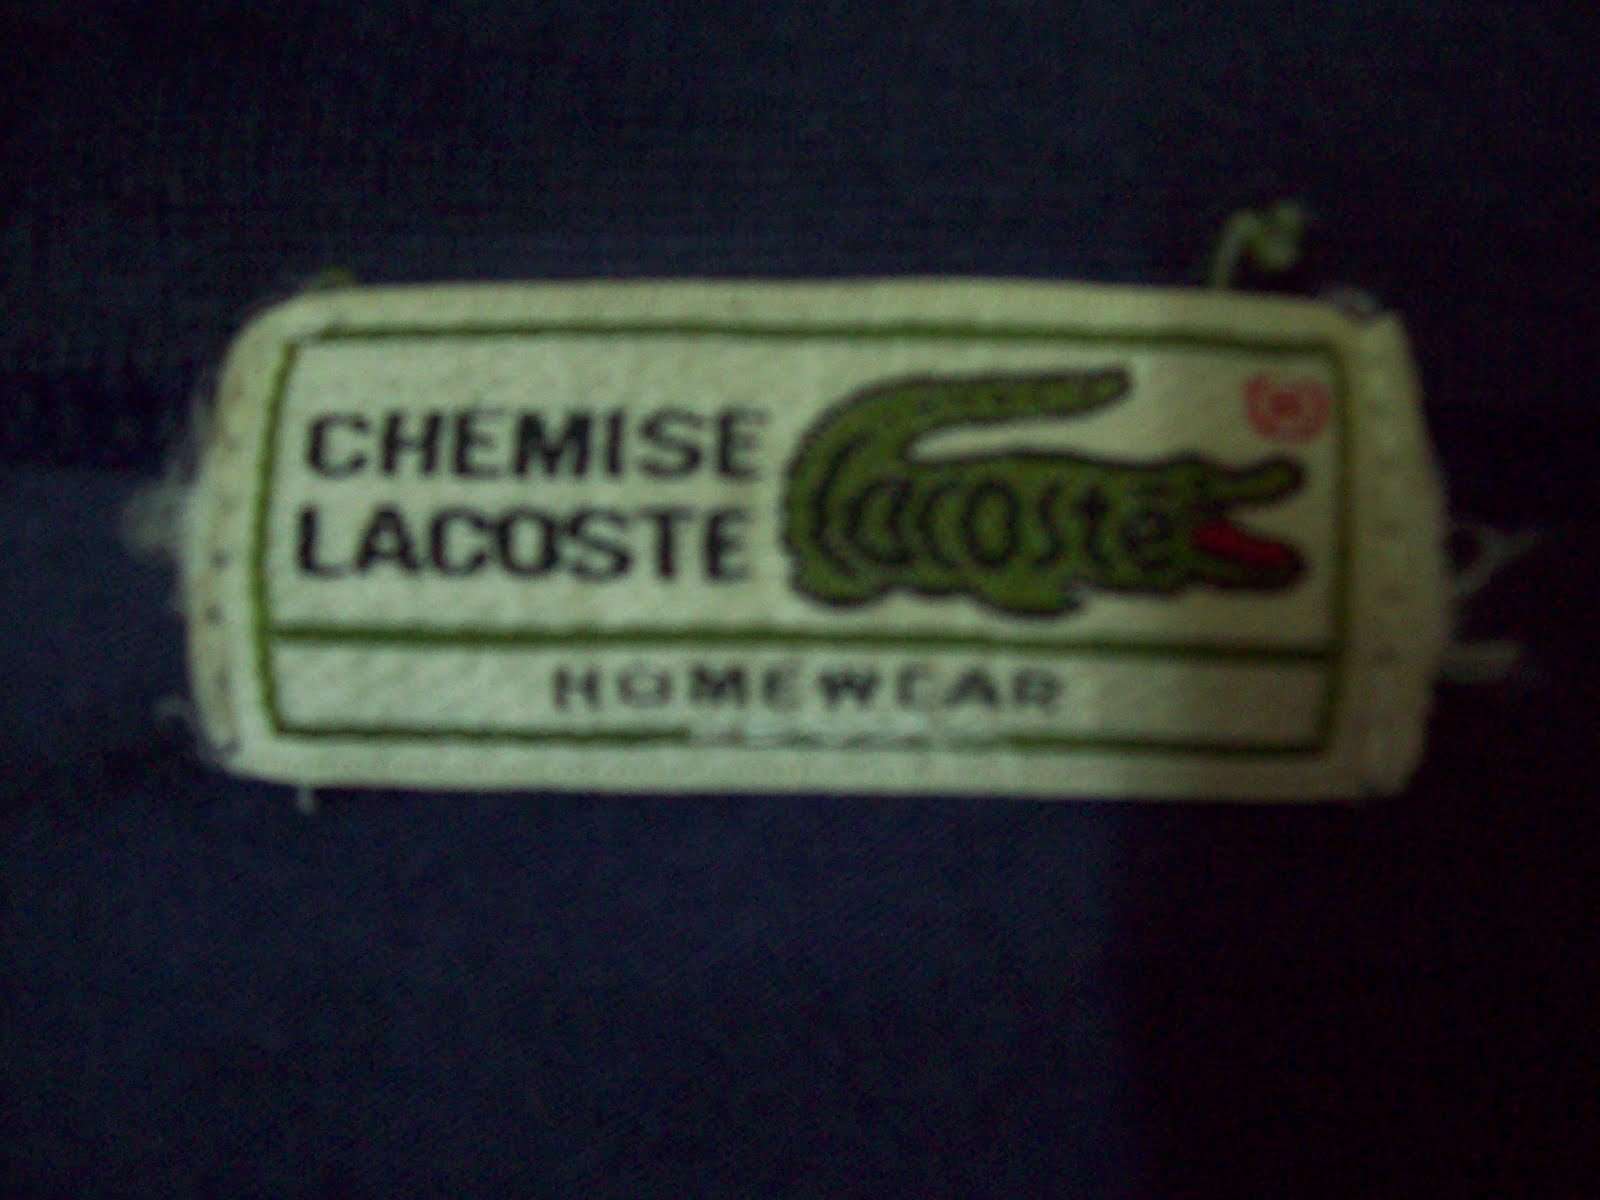 New Old Stuff Chemise Lacoste T Shirt